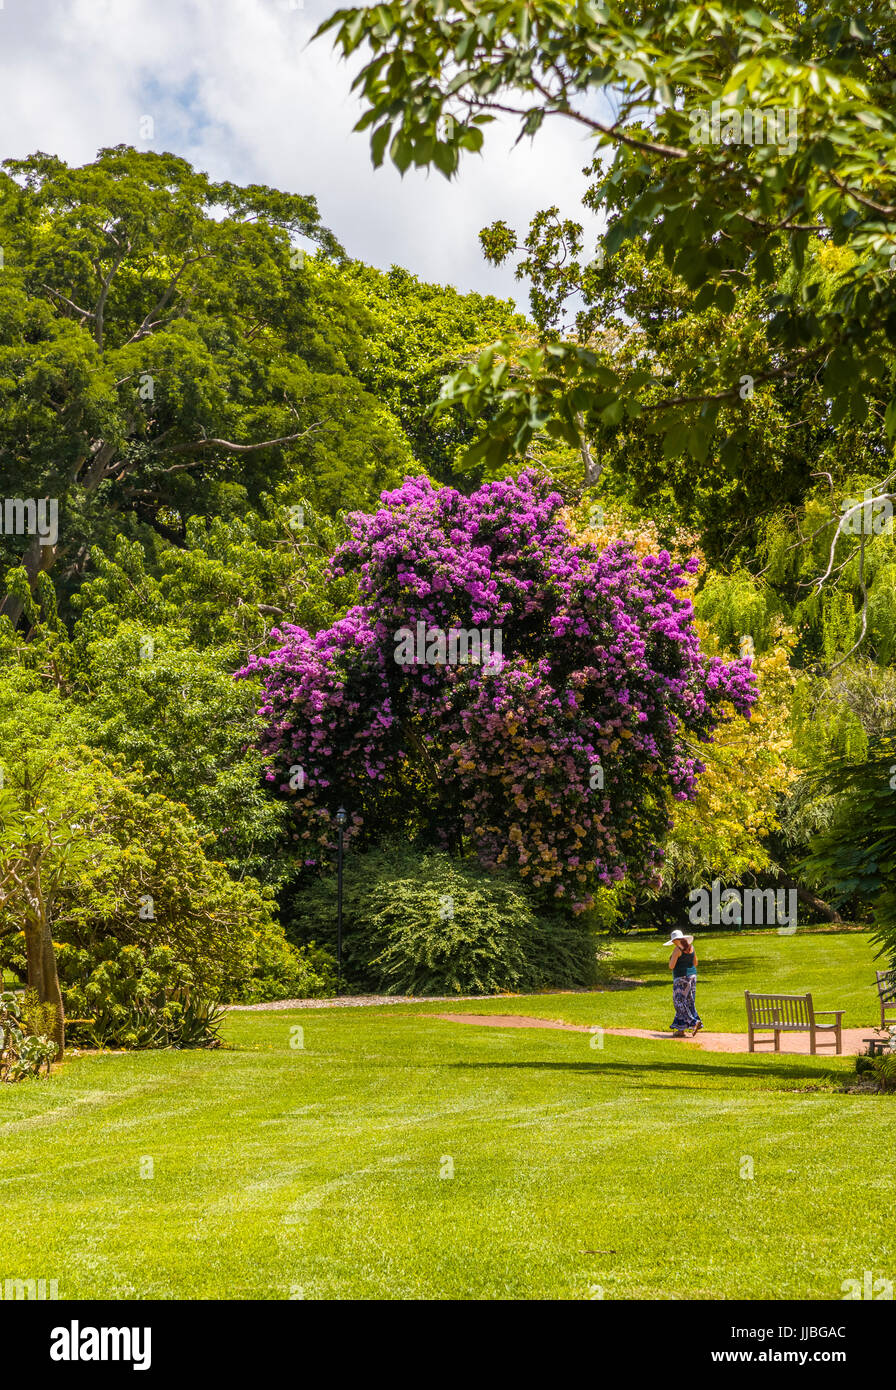 Fairchild stock photos fairchild stock images alamy - Fairchild tropical botanic garden ...